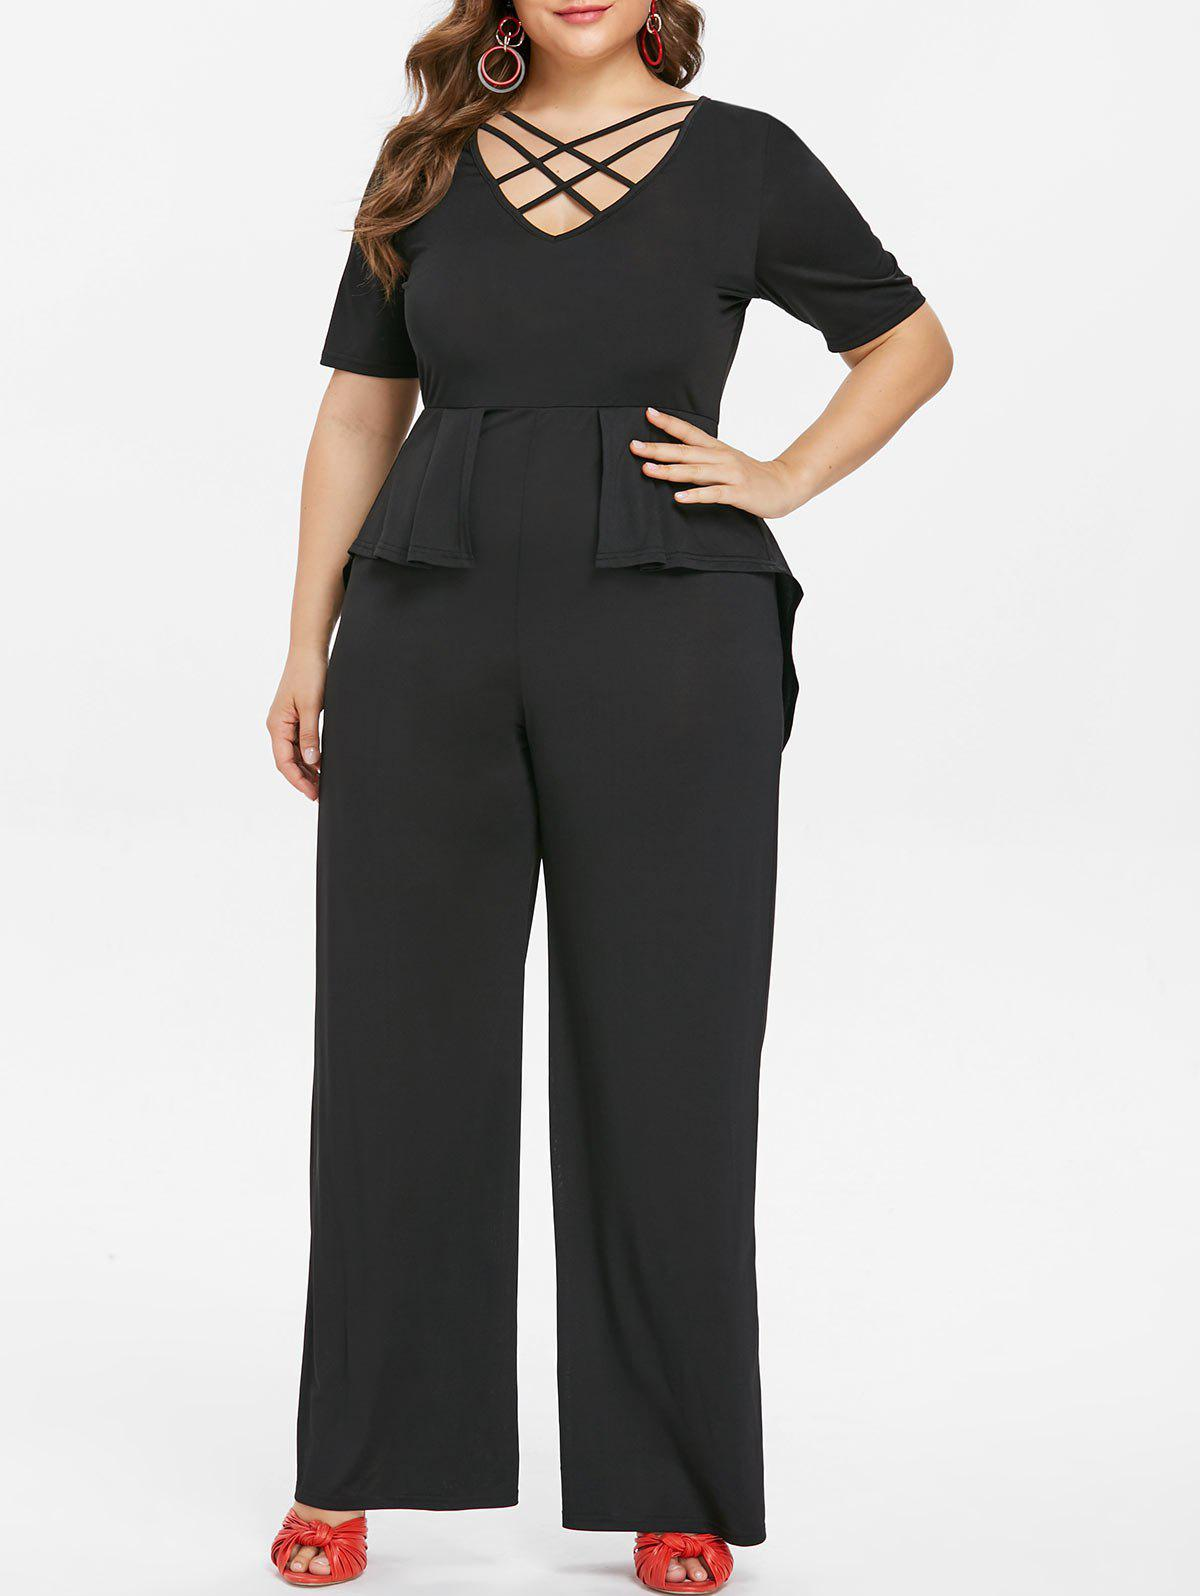 Cheap Plus Size Criss Cross Peplum Jumpsuit